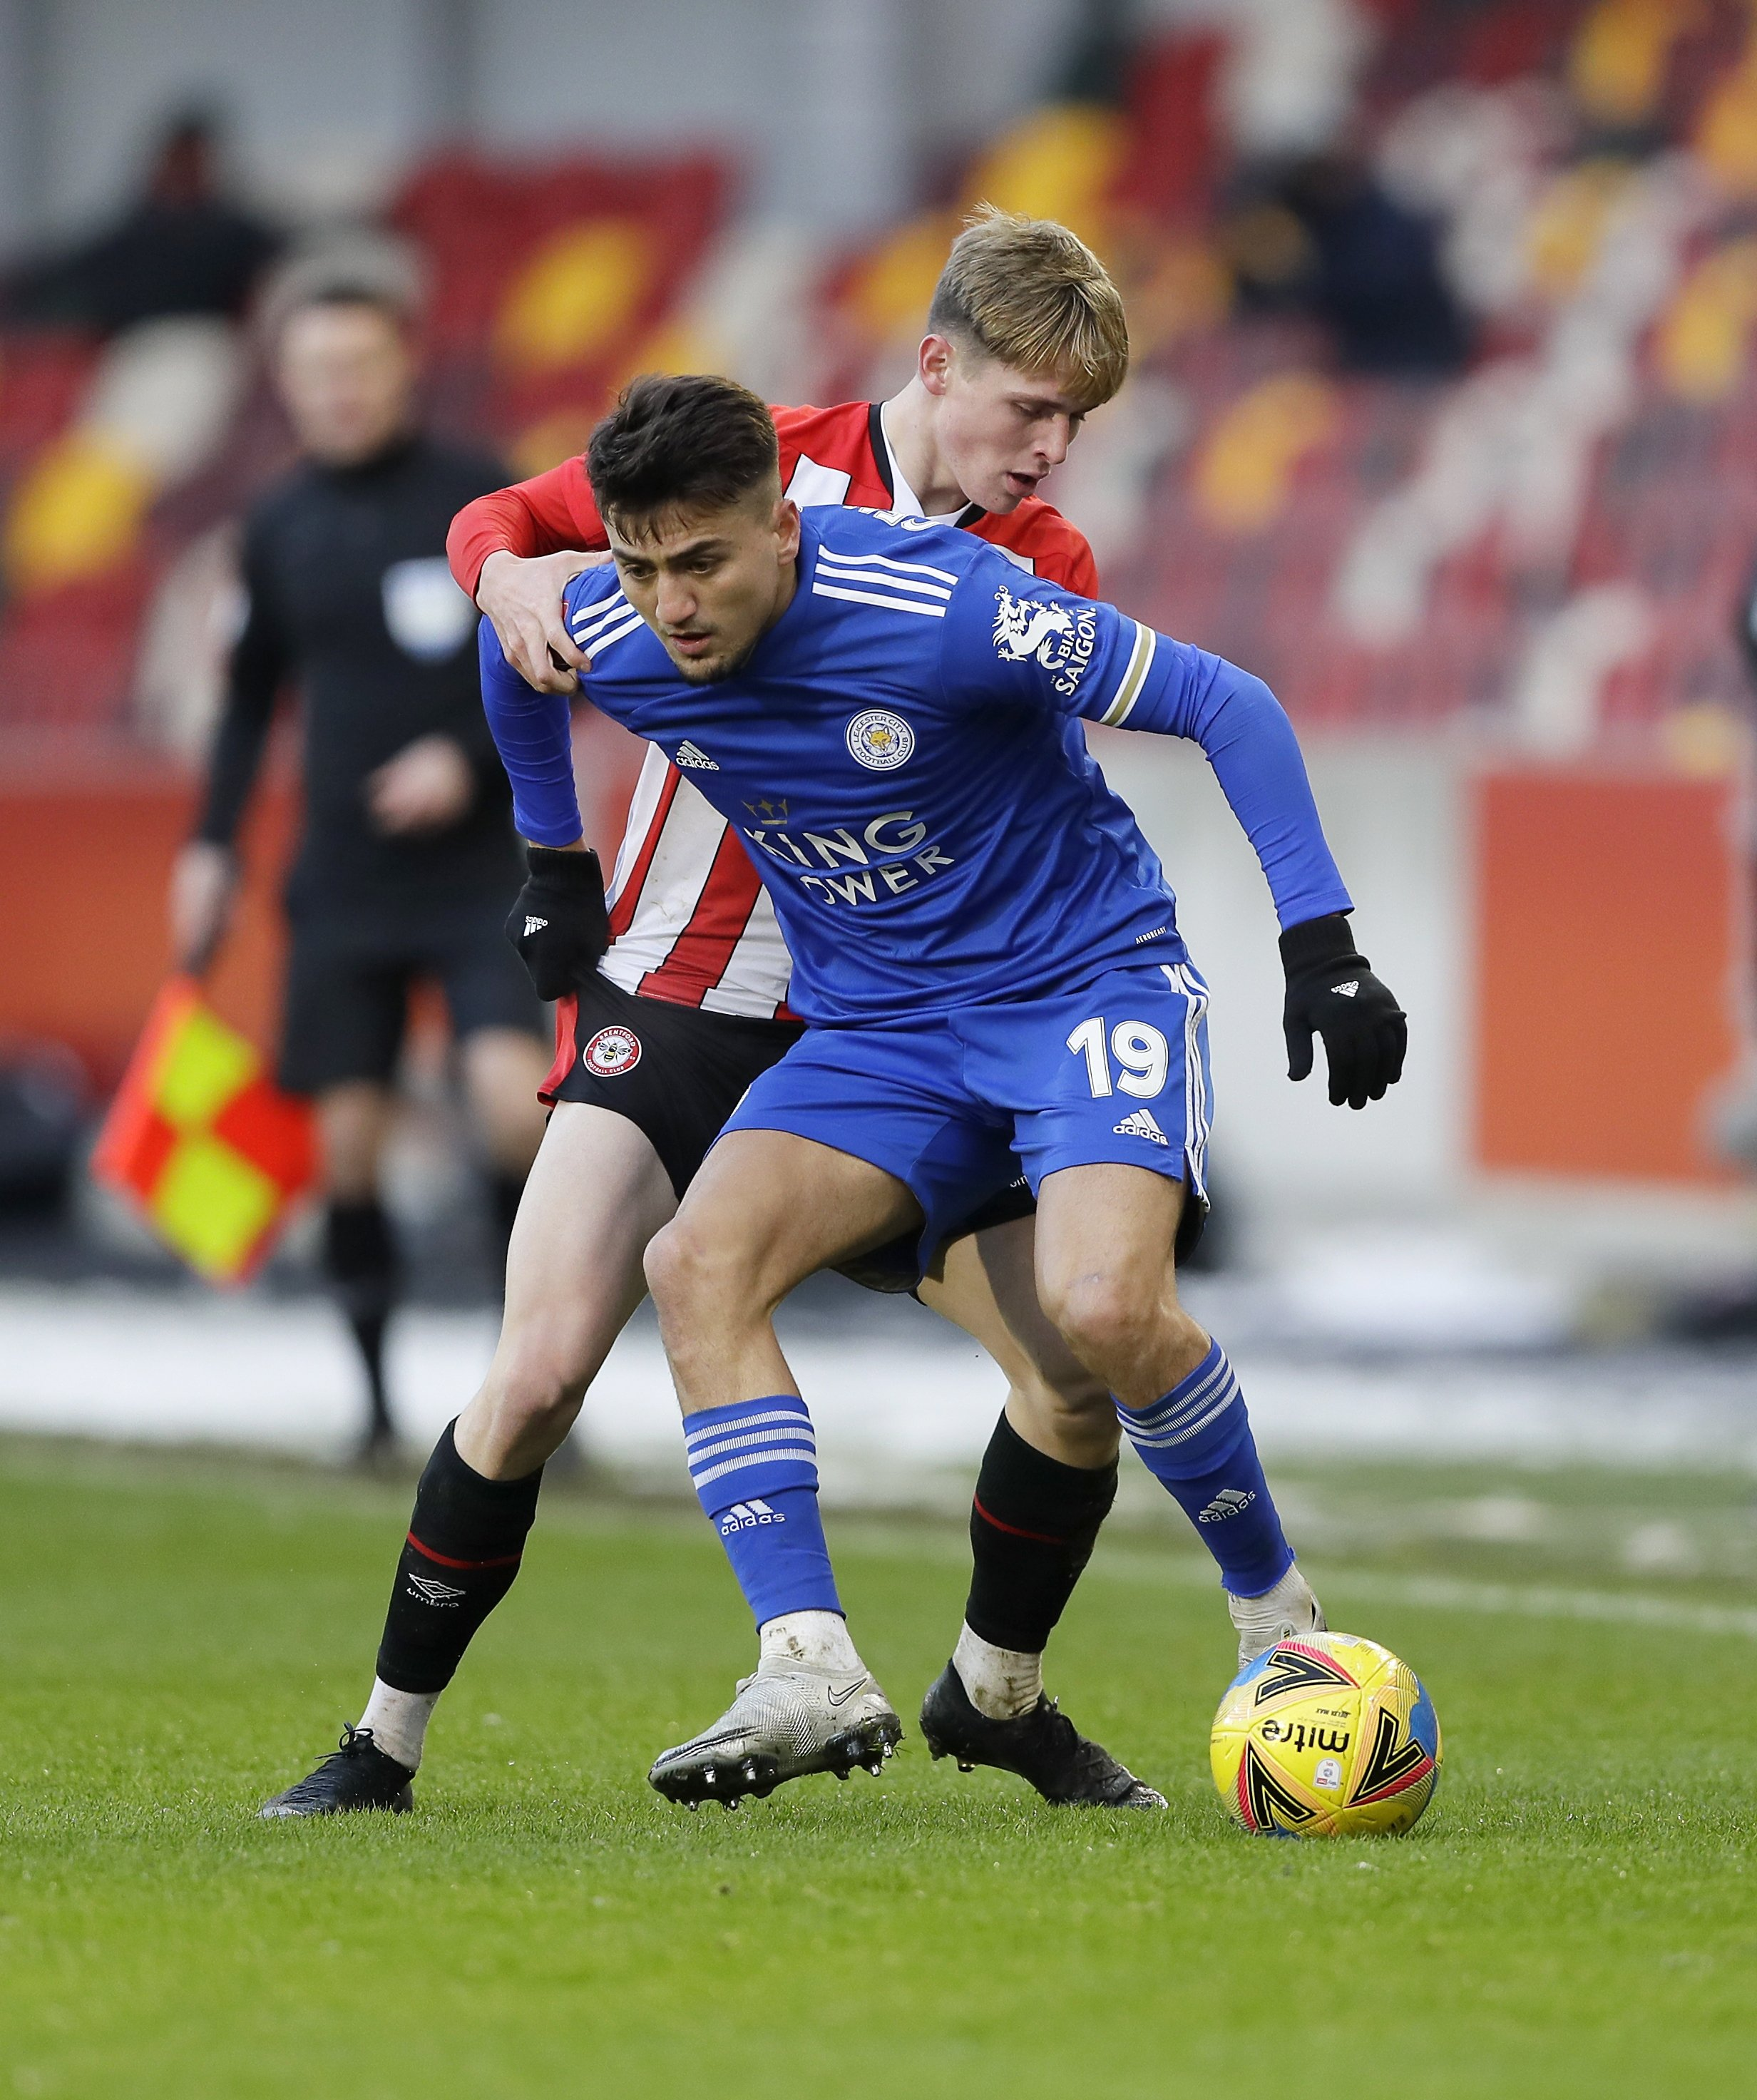 Leicester City's Cengiz Ünder (R) vies for the ball with Brentford's Finley Stevens in a FA Cup match at Brentford Community Stadium, London, England, Jan. 24, 2021. (AP Photo)